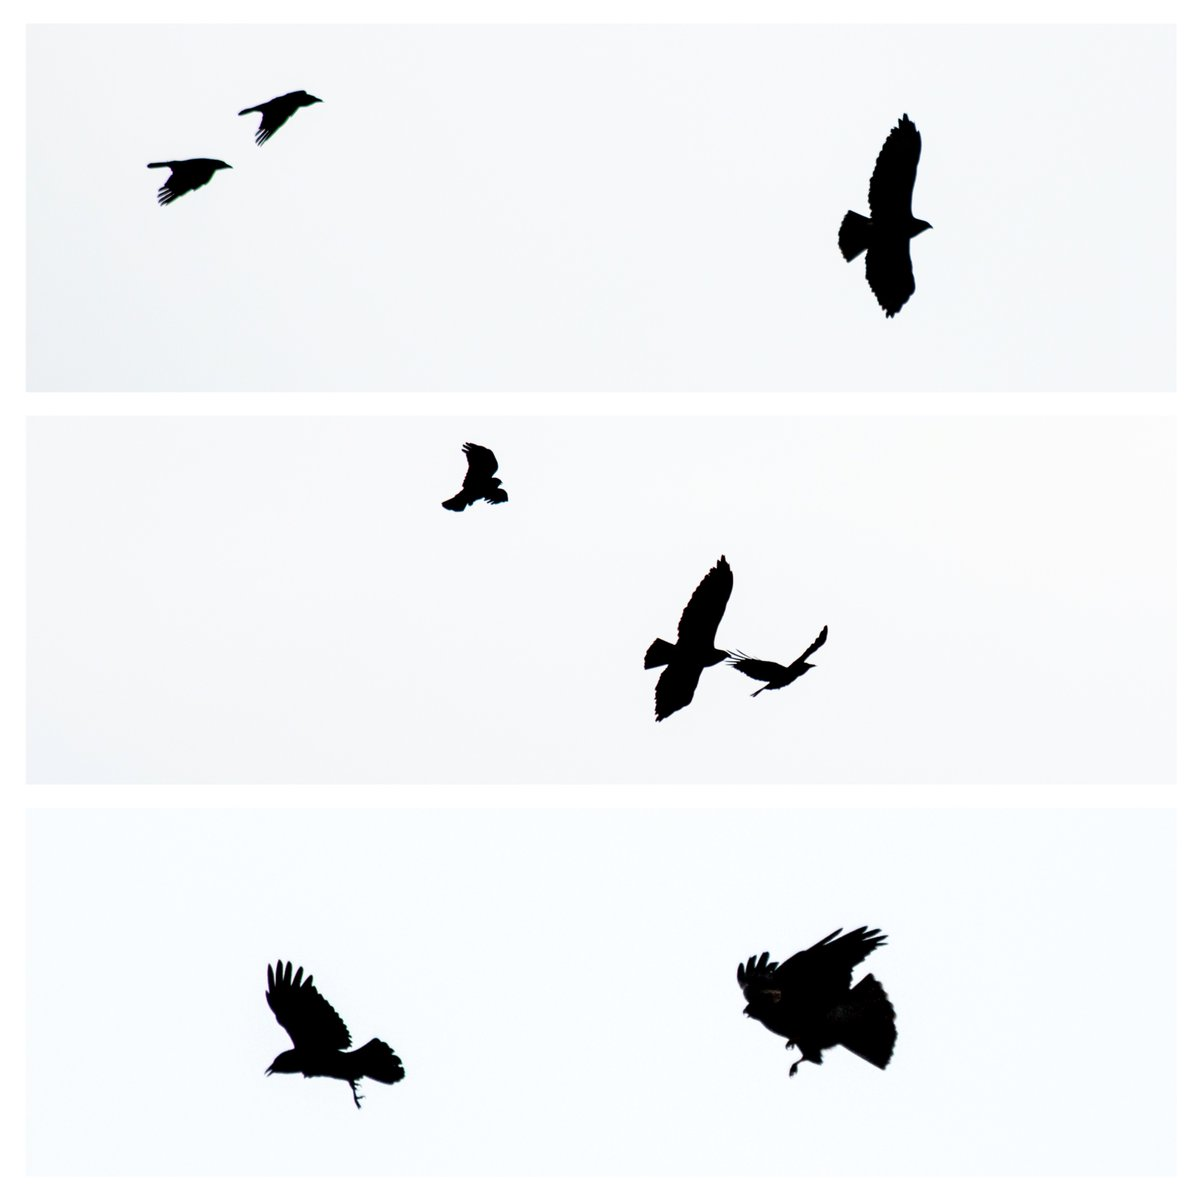 1200x1200 Rebeccabeusmansphoto On Twitter A Short Tale Of Crows V'S